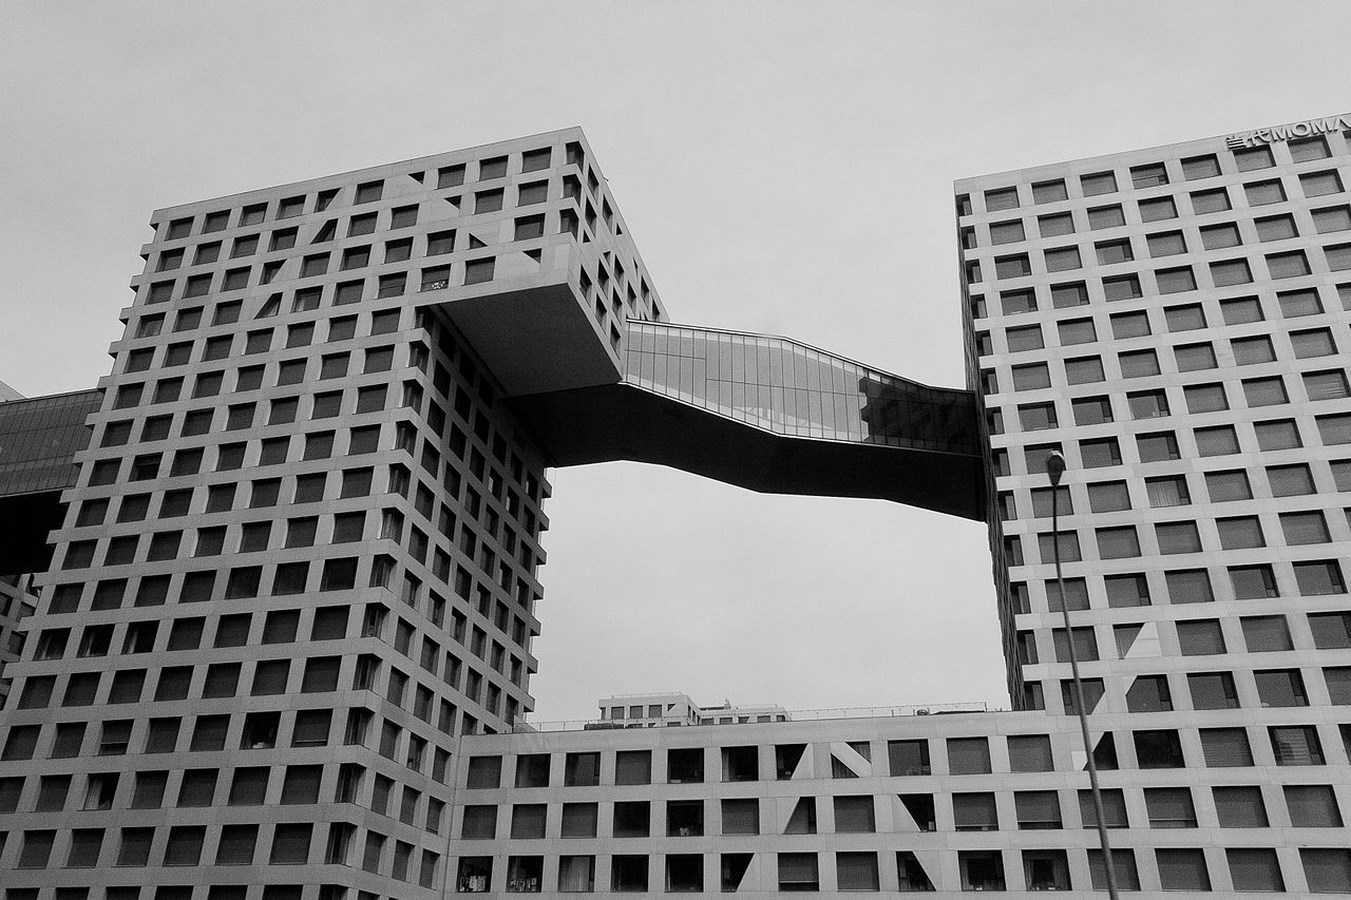 25 Projects by Steven Holl that mark his shift from Typology to Phenomenology - Linked Hybrid, China